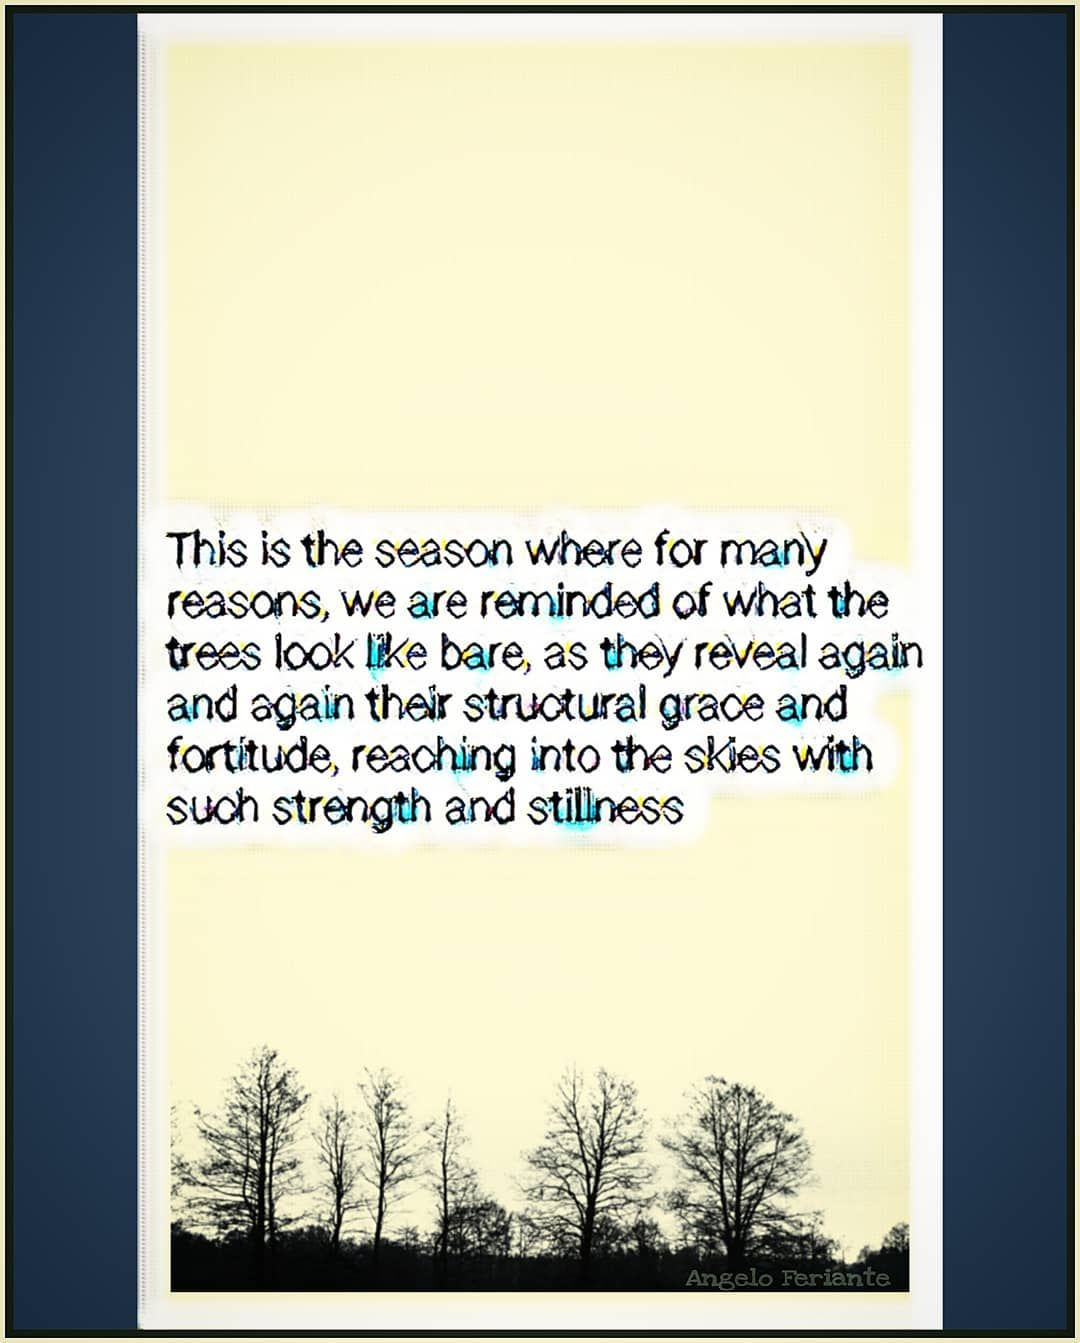 This is the season where for many reasons we are reminded of what the trees look like bare as they reveal again and again their structural grace and fortitude reaching in...